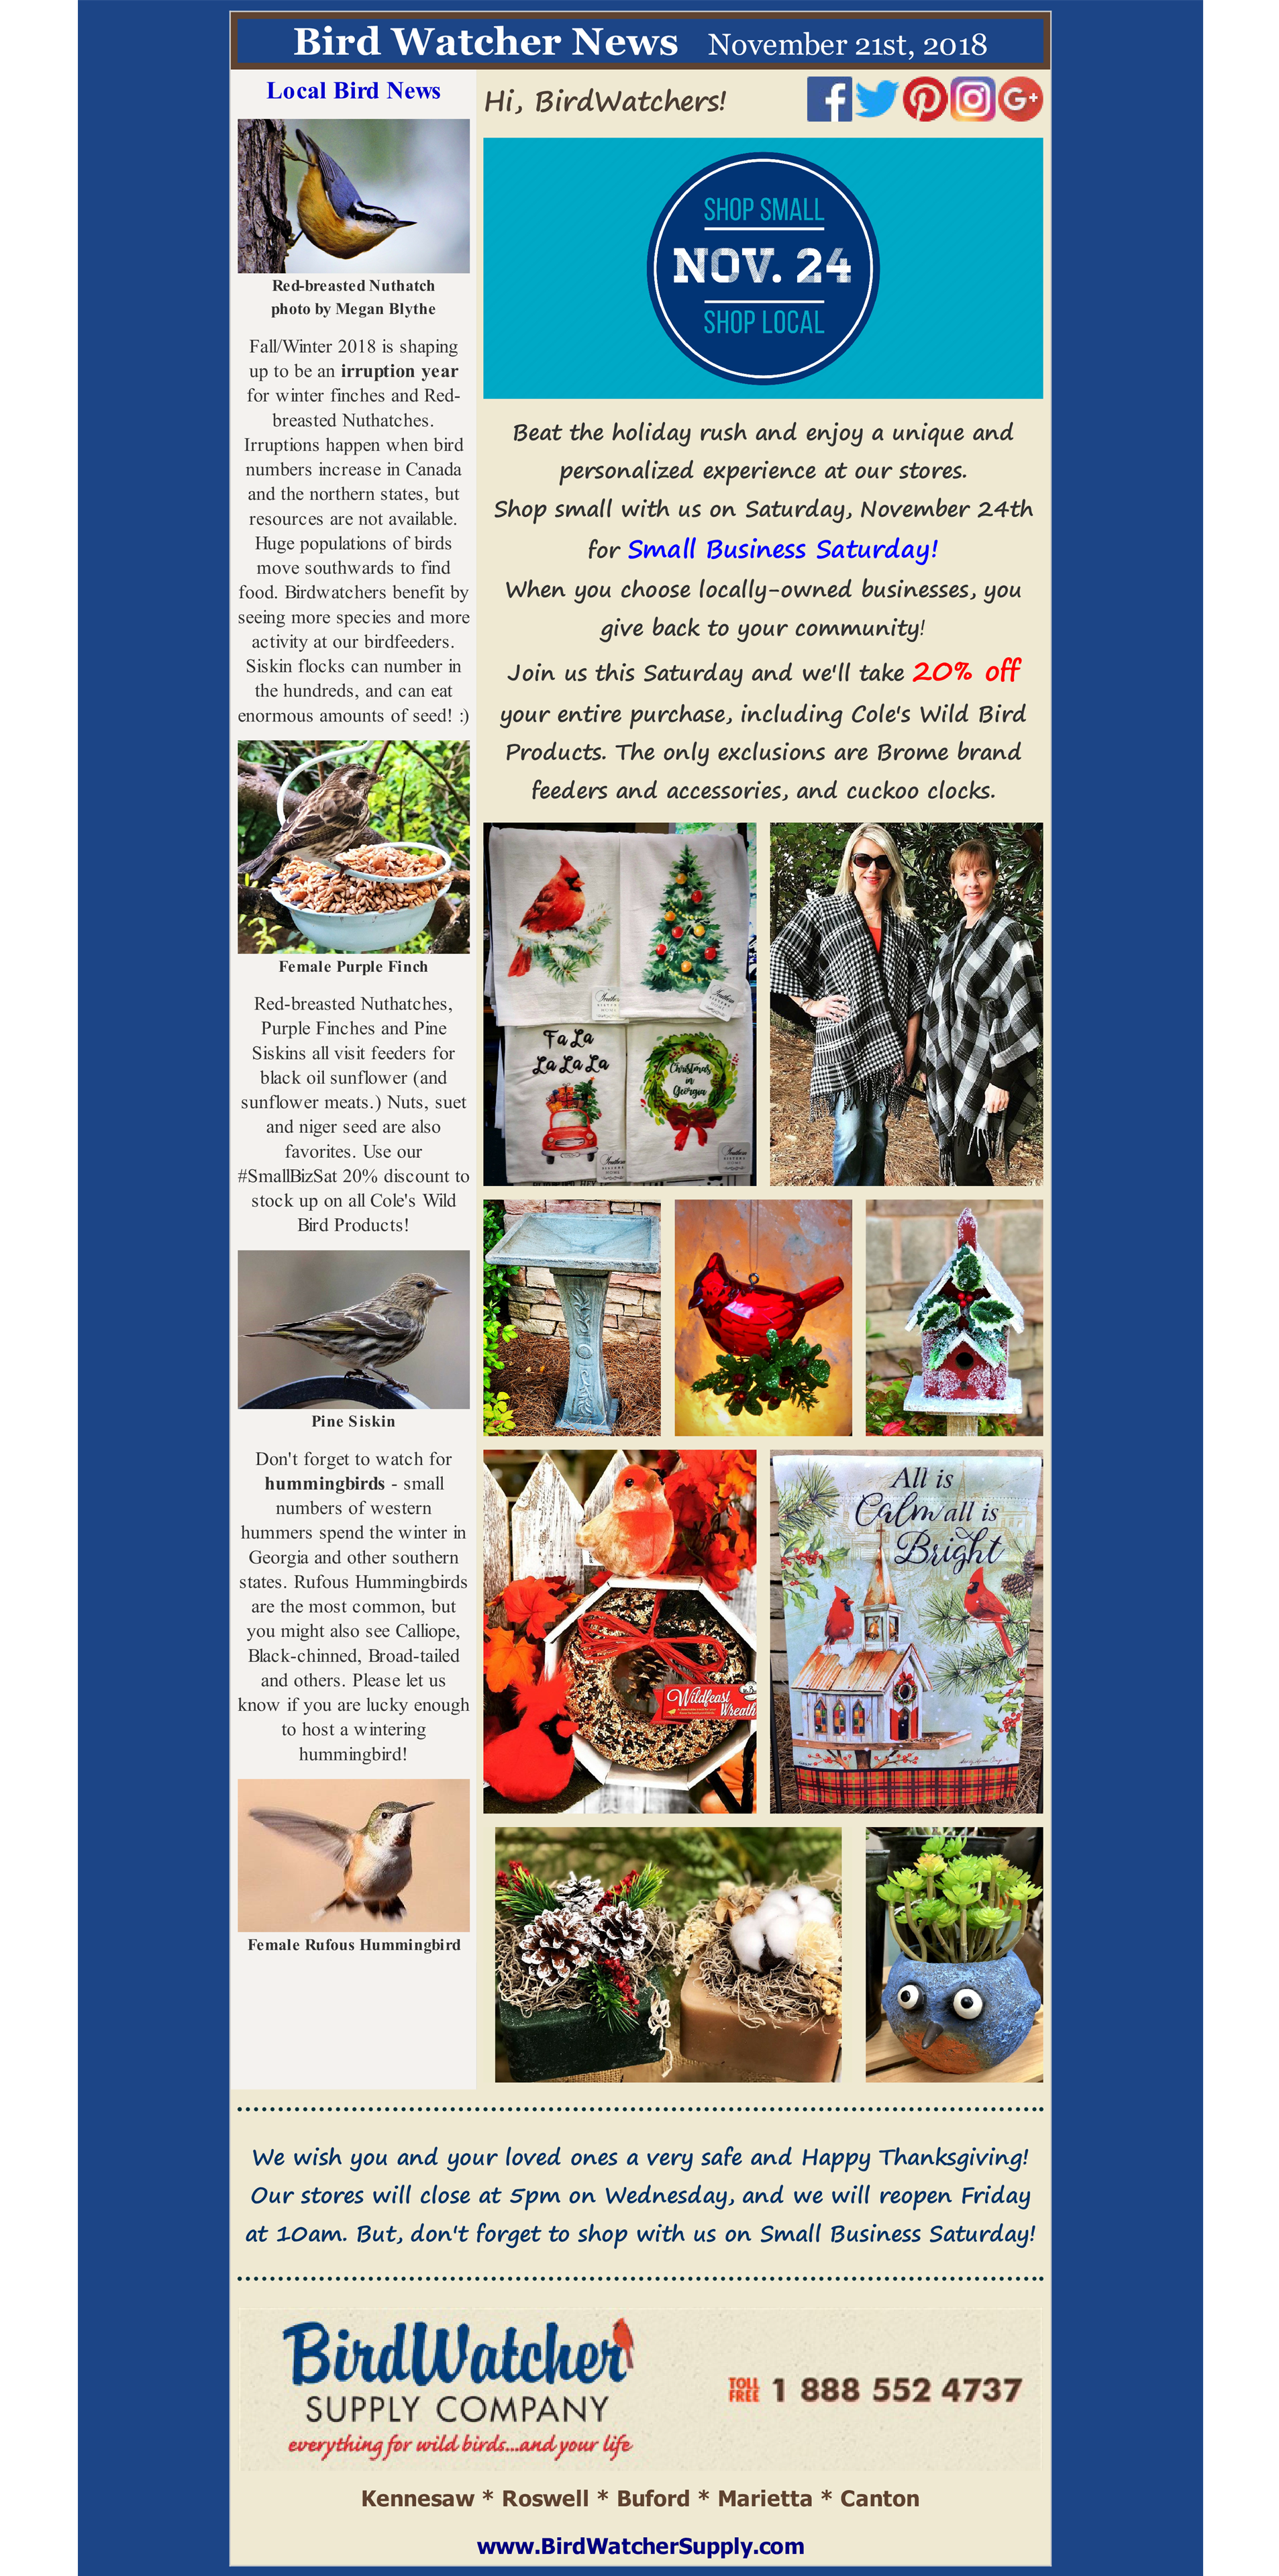 shop local, shop small, small business saturday, gifts, garden, winter finches, coupon, discount